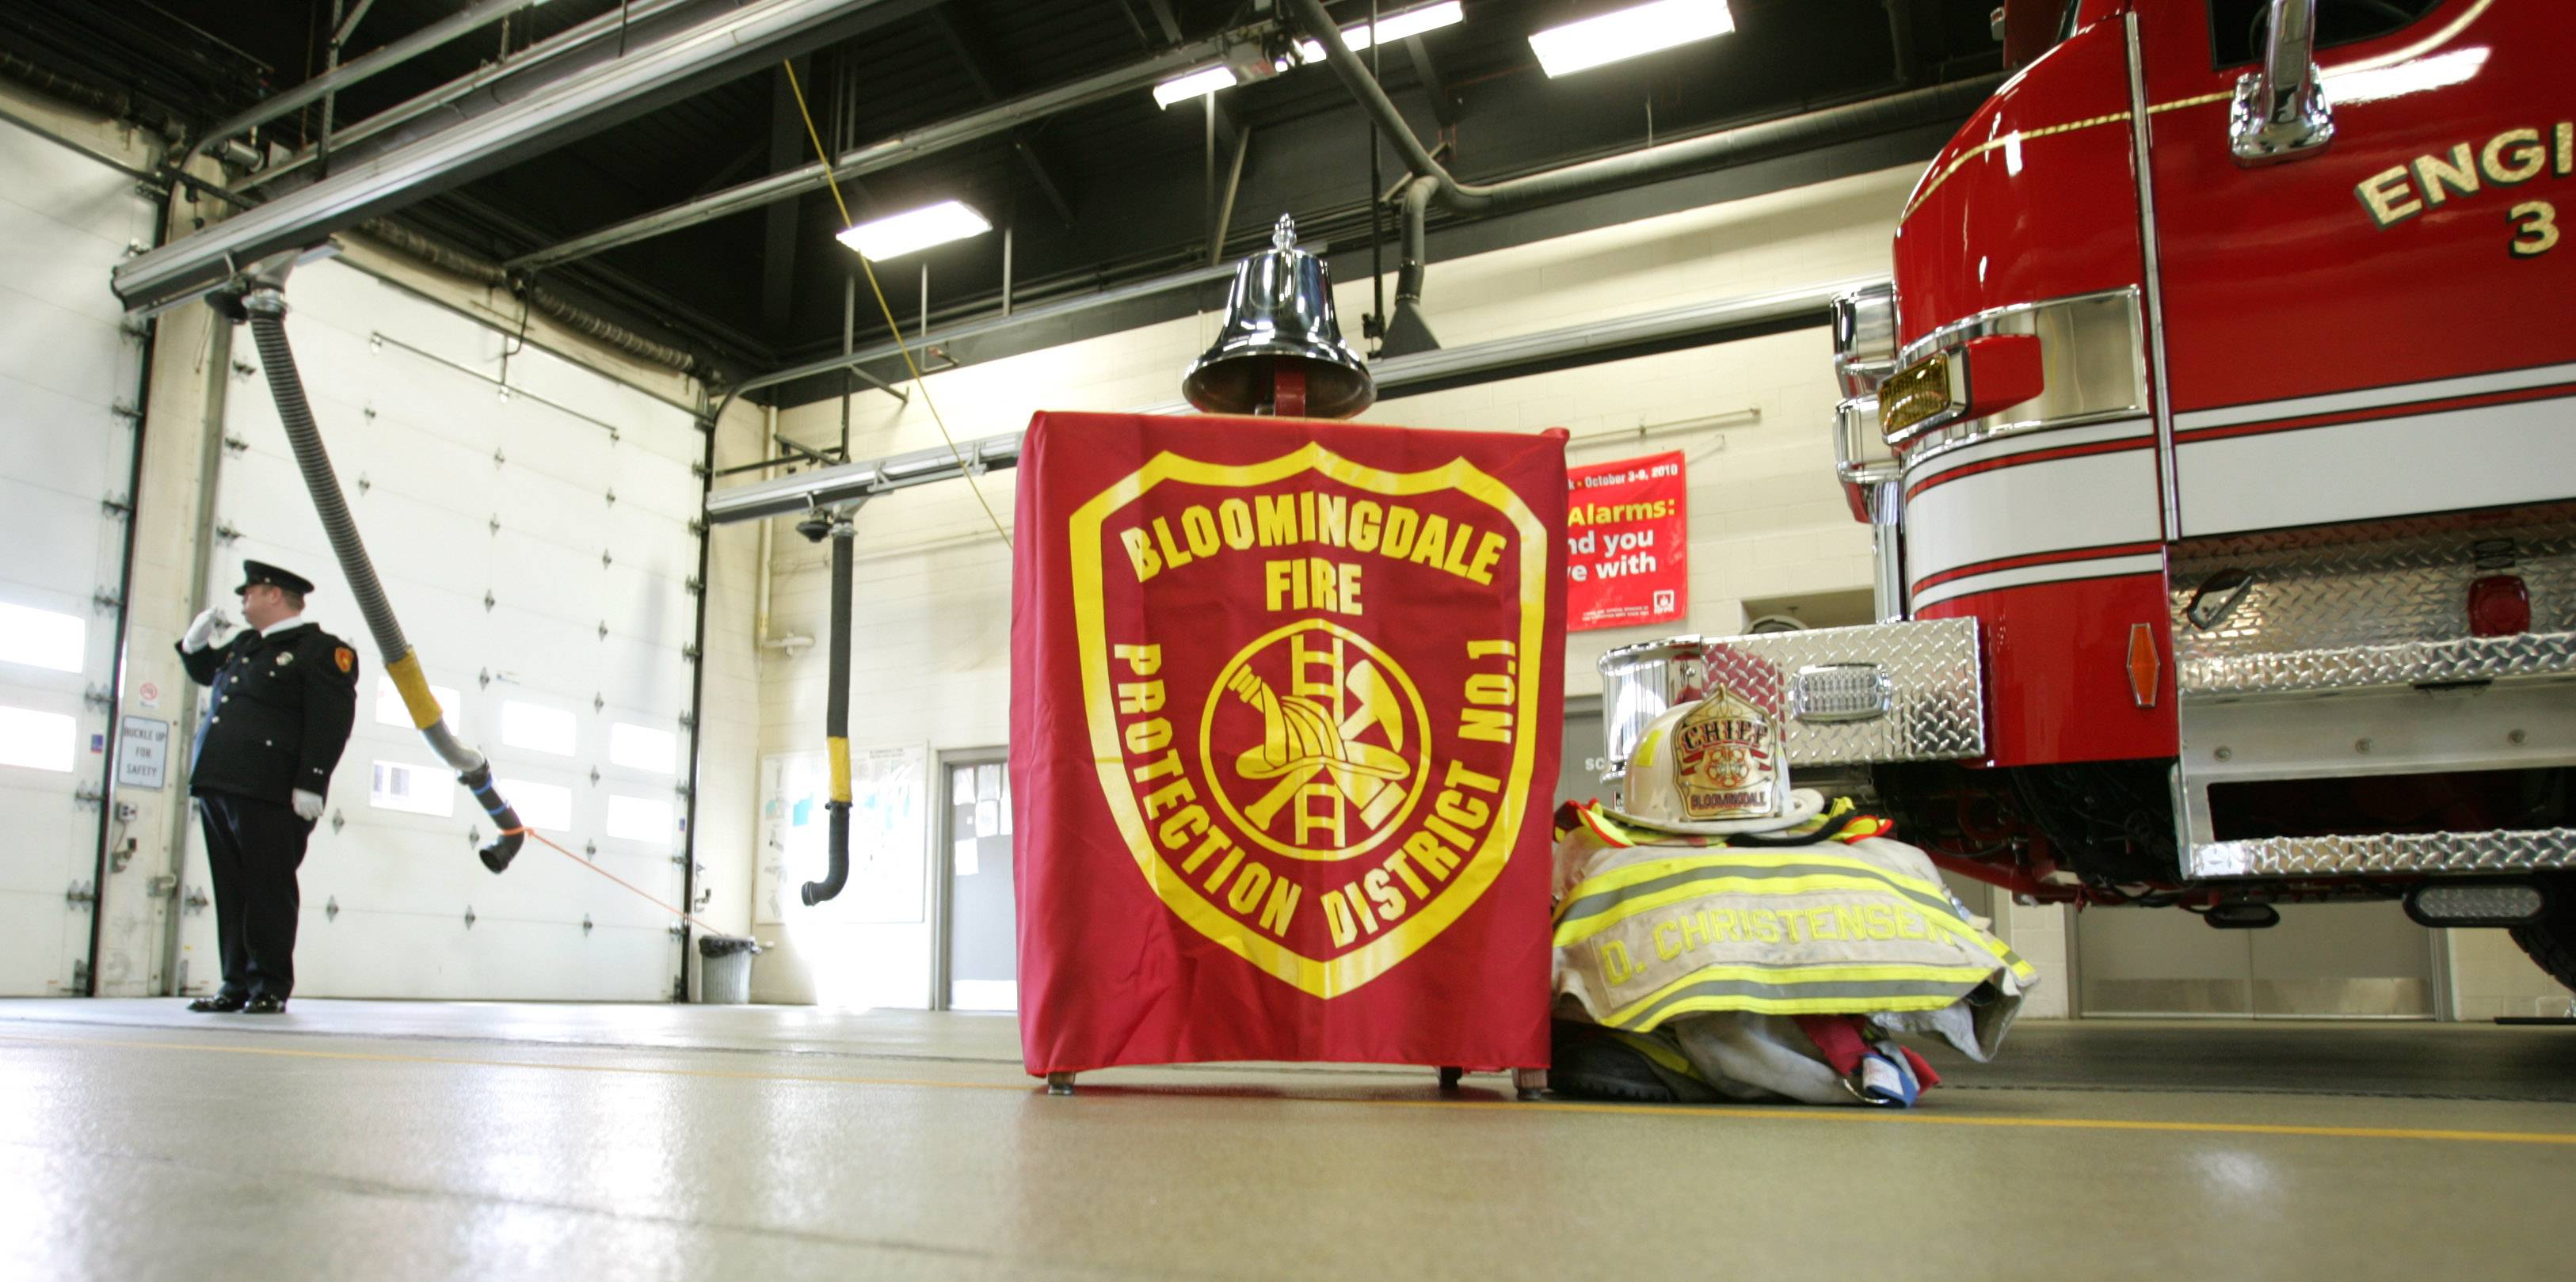 "Bloomingdale Fire Protection District leaders say they're willing to listen to Hanover Park's overtures to provide services to an area currently within the district. ""We have to make sure it isn't detrimental to the rest of the district,"" said Tim Deutschle, who sits on the Bloomingdale Fire Protection District's board."